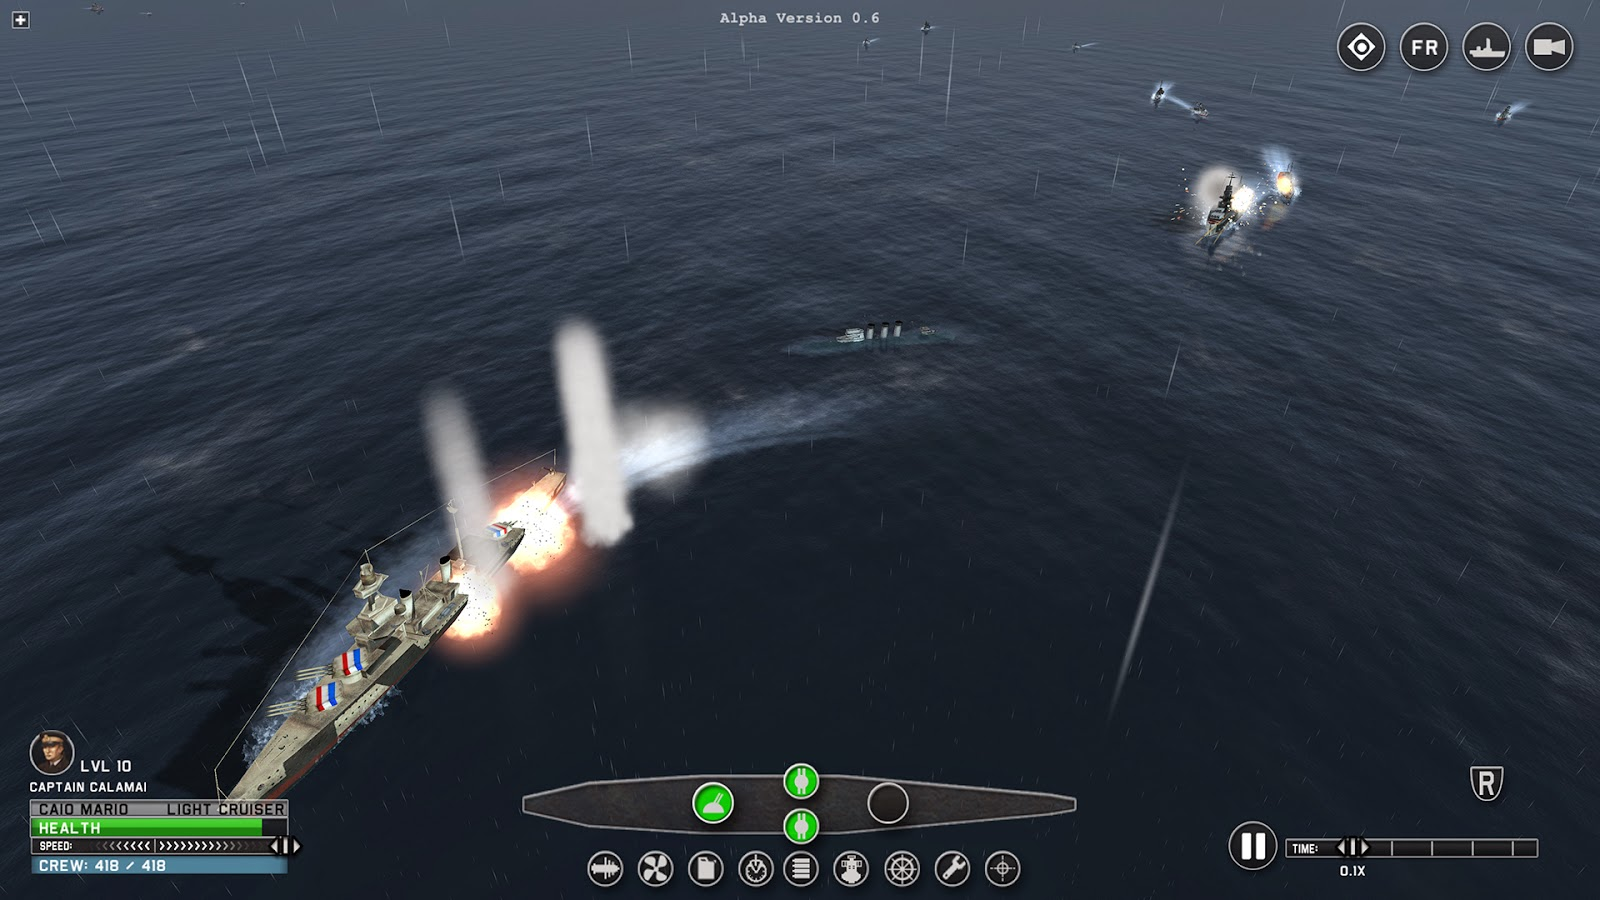 naval strategy game, battelship game, naval game pc